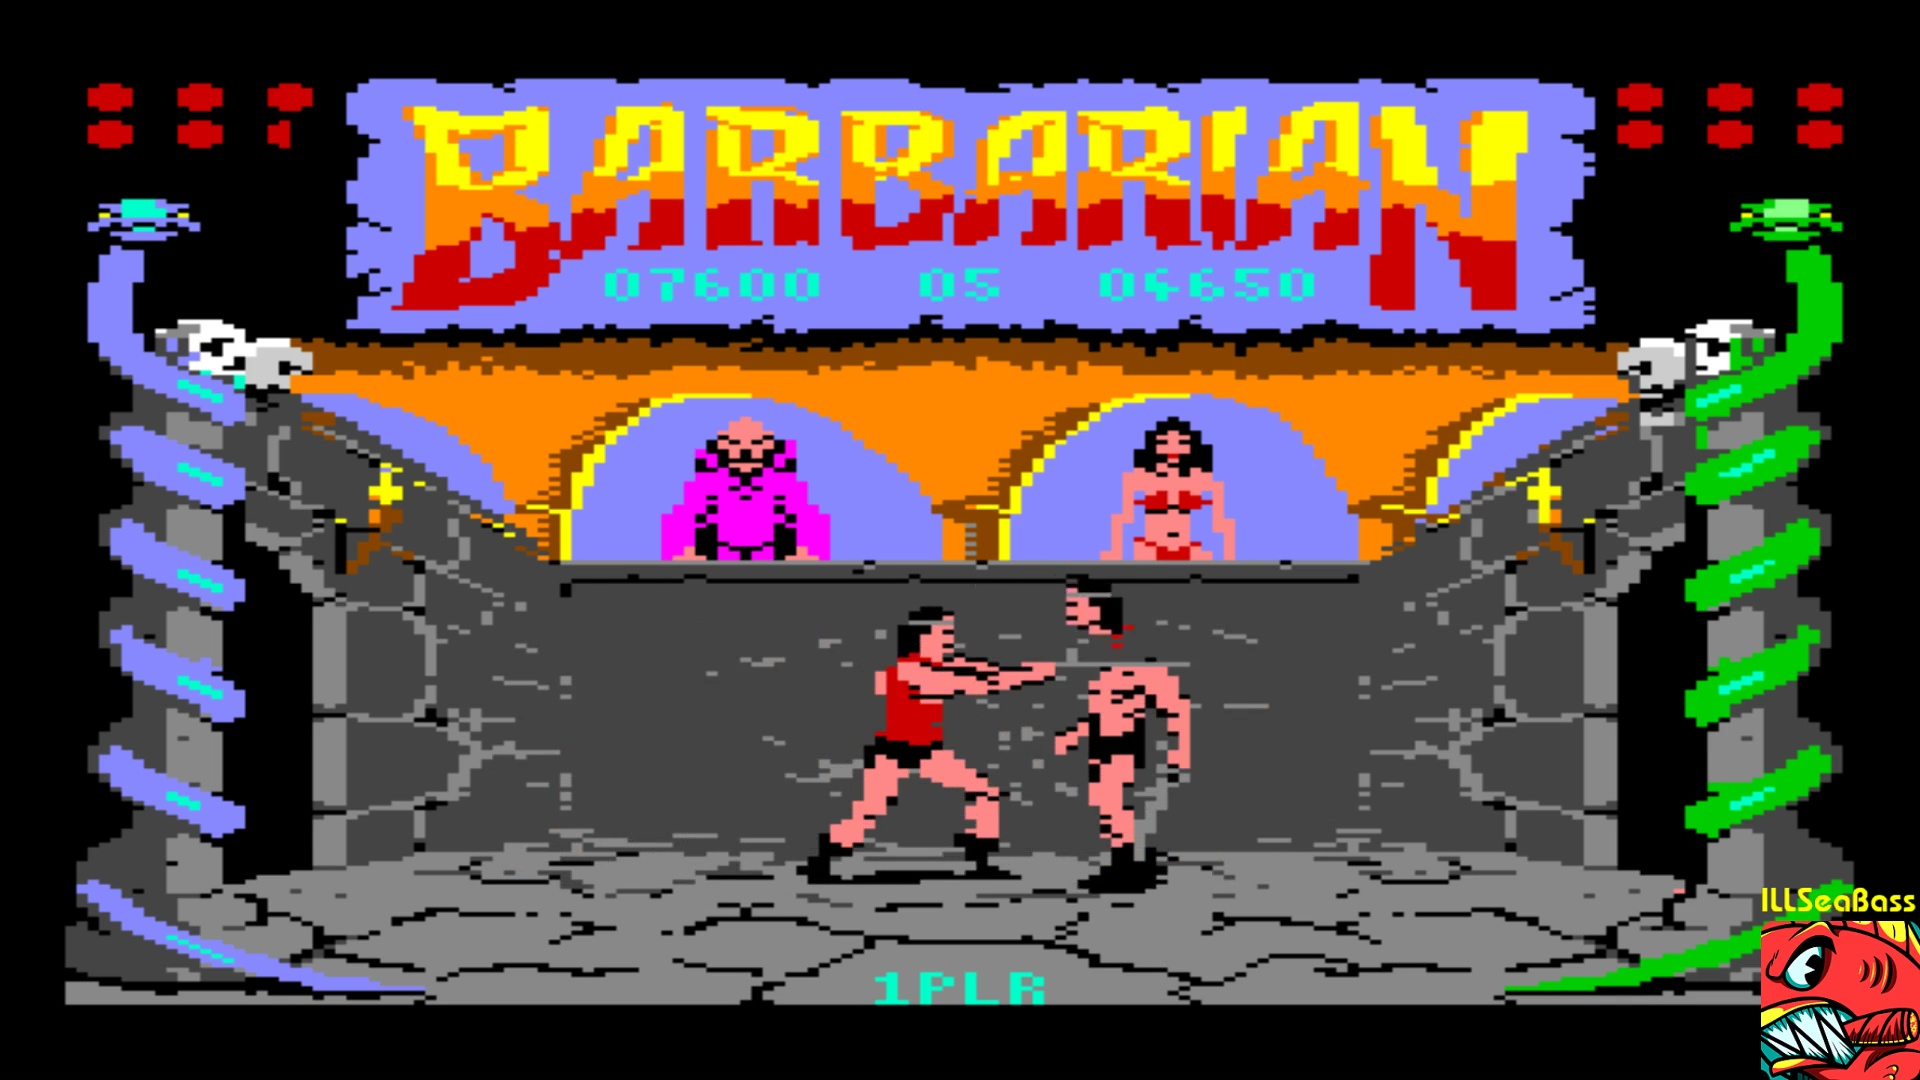 ILLSeaBass: Barbarian: The Ultimate Warrior (Commodore 64 Emulated) 7,600 points on 2018-01-04 21:11:37